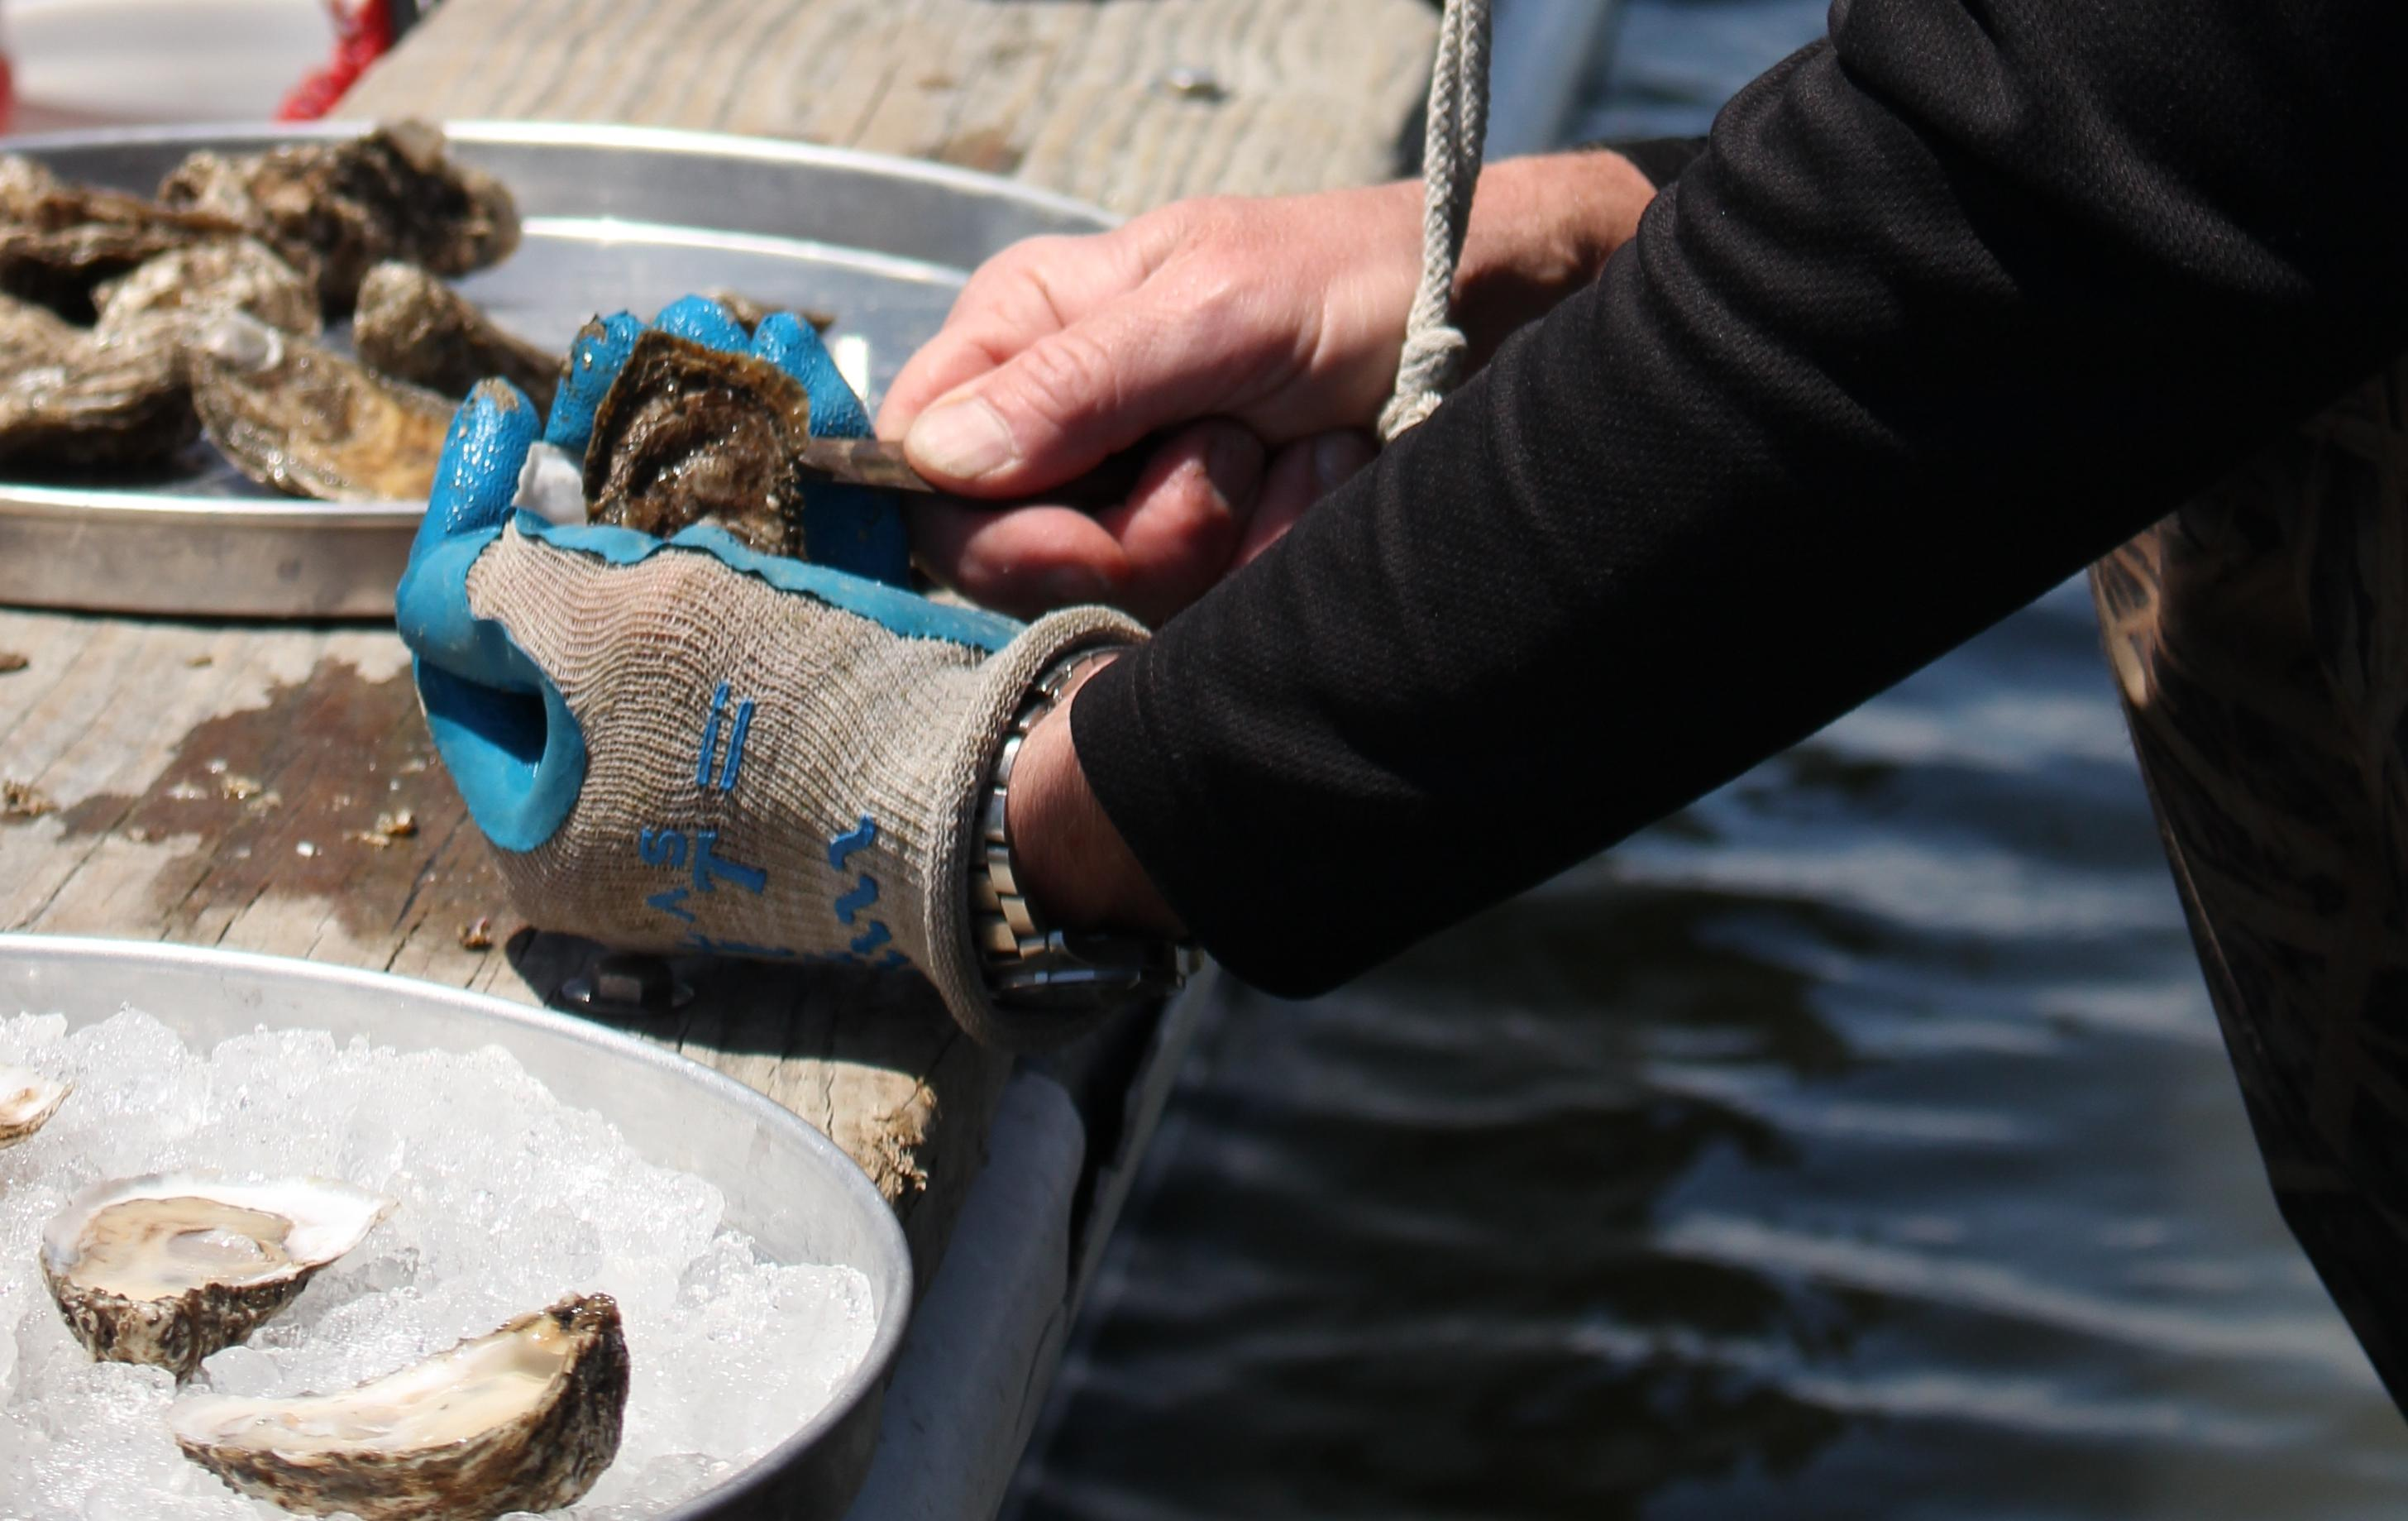 If you want to slurp down some of the freshest oysters from the Chesapeake region, look no further than Virginia's oyster trail, located mostly on the Northern Neck and Middle Peninsula regions of the Chesapeake Bay. (Image: Courtesy Virginia Oyster Trail)